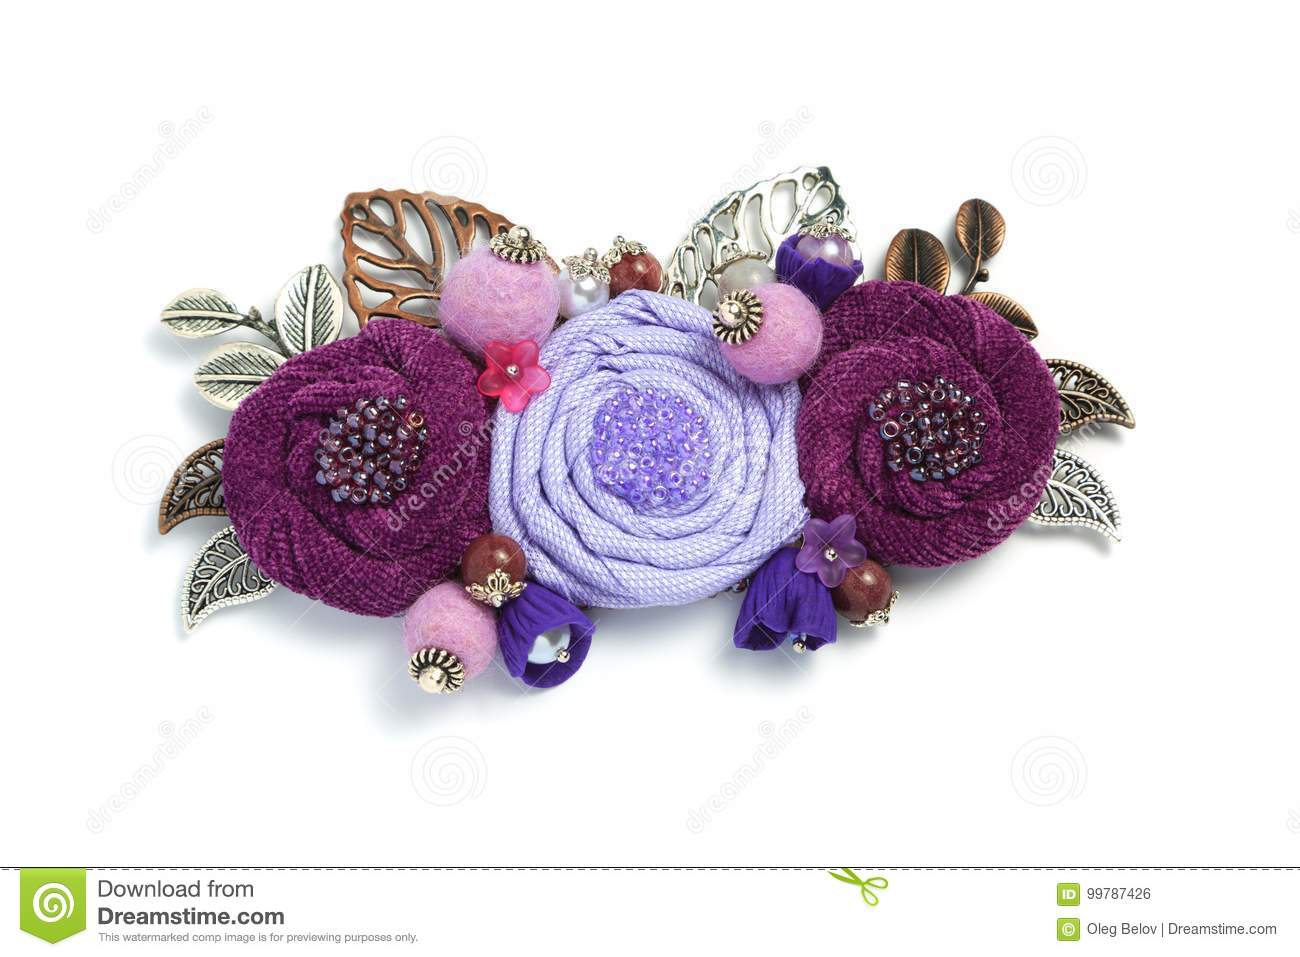 Brooch handmade from a fabric consisting of flowers of lavender and burgundy color on a white background